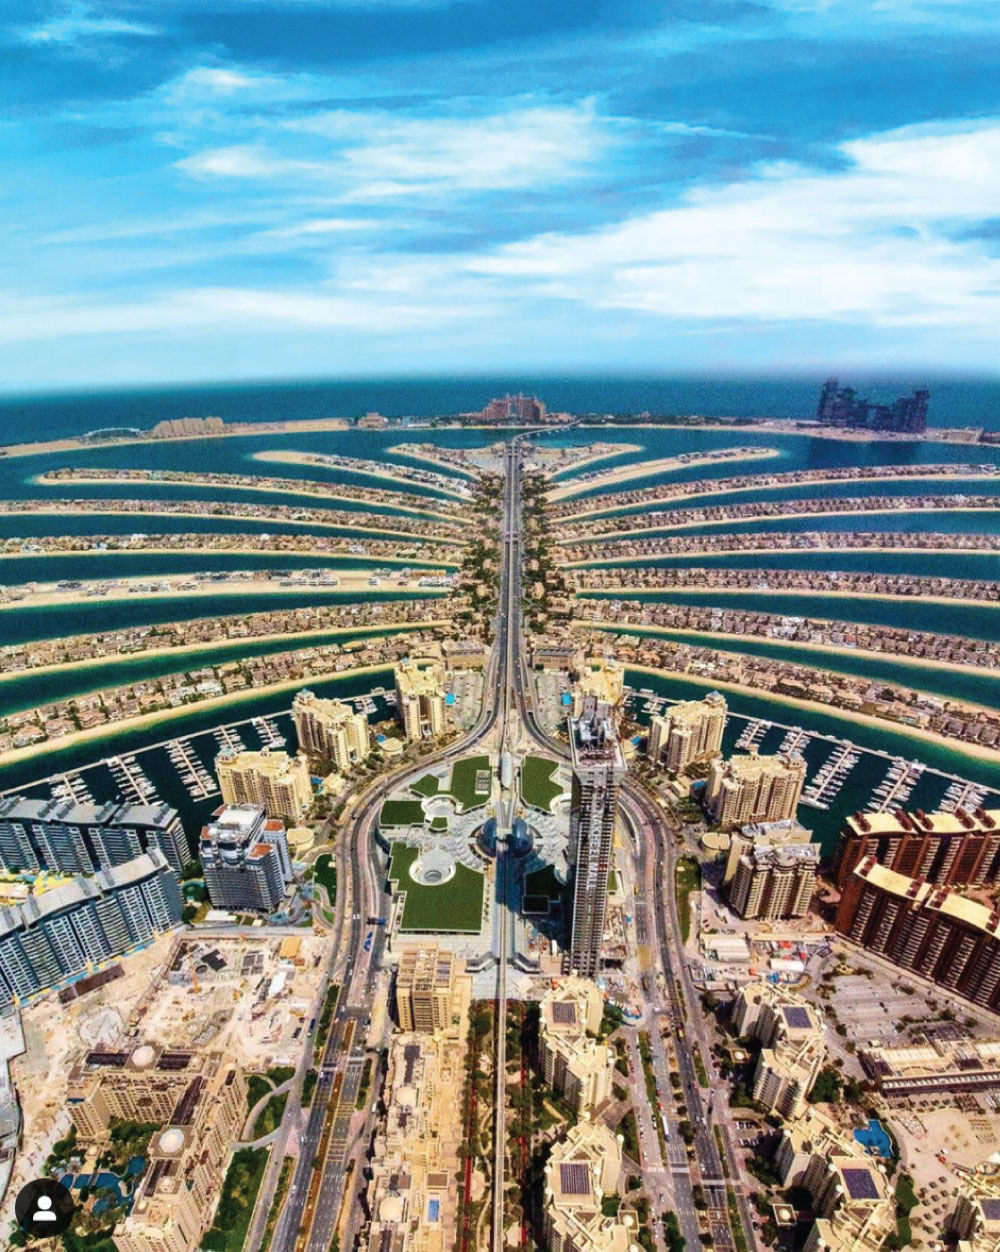 looking down the centre of the palm Dubai from a high altitude.